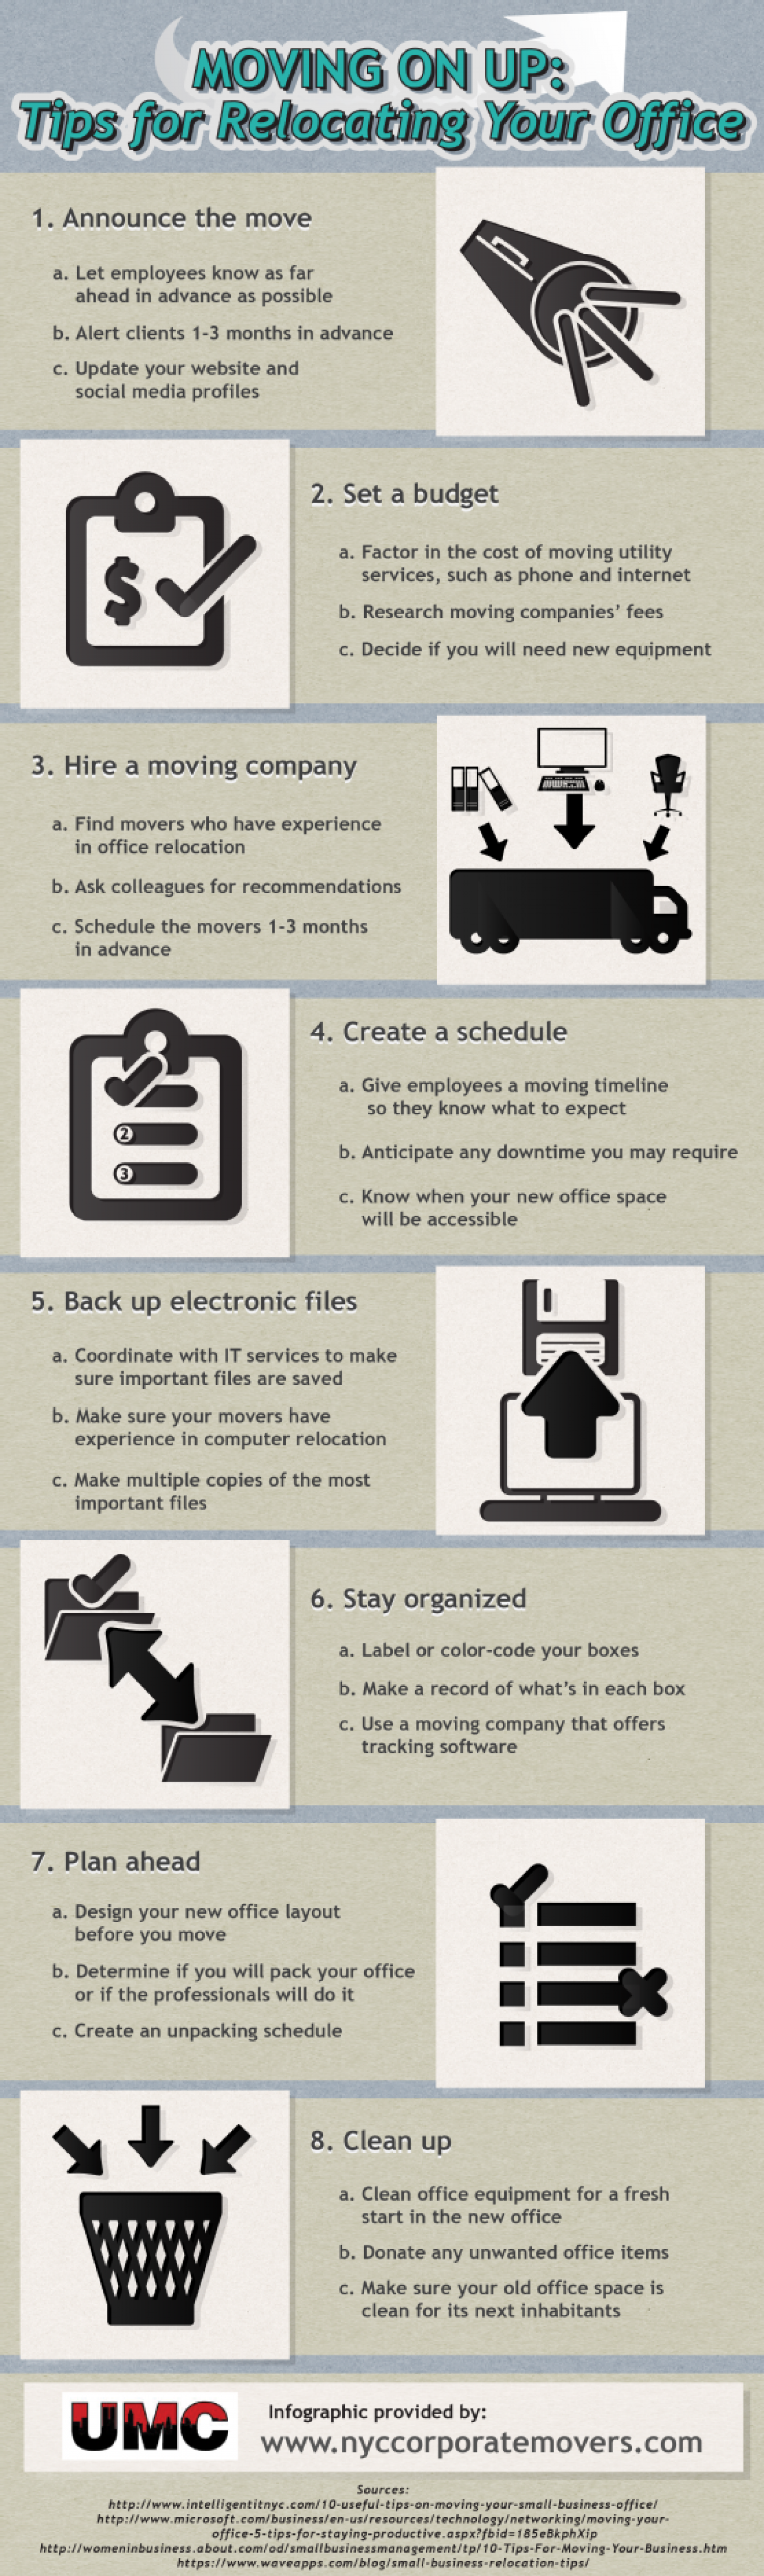 Moving On Up: Tips for Relocating Your Office  Infographic